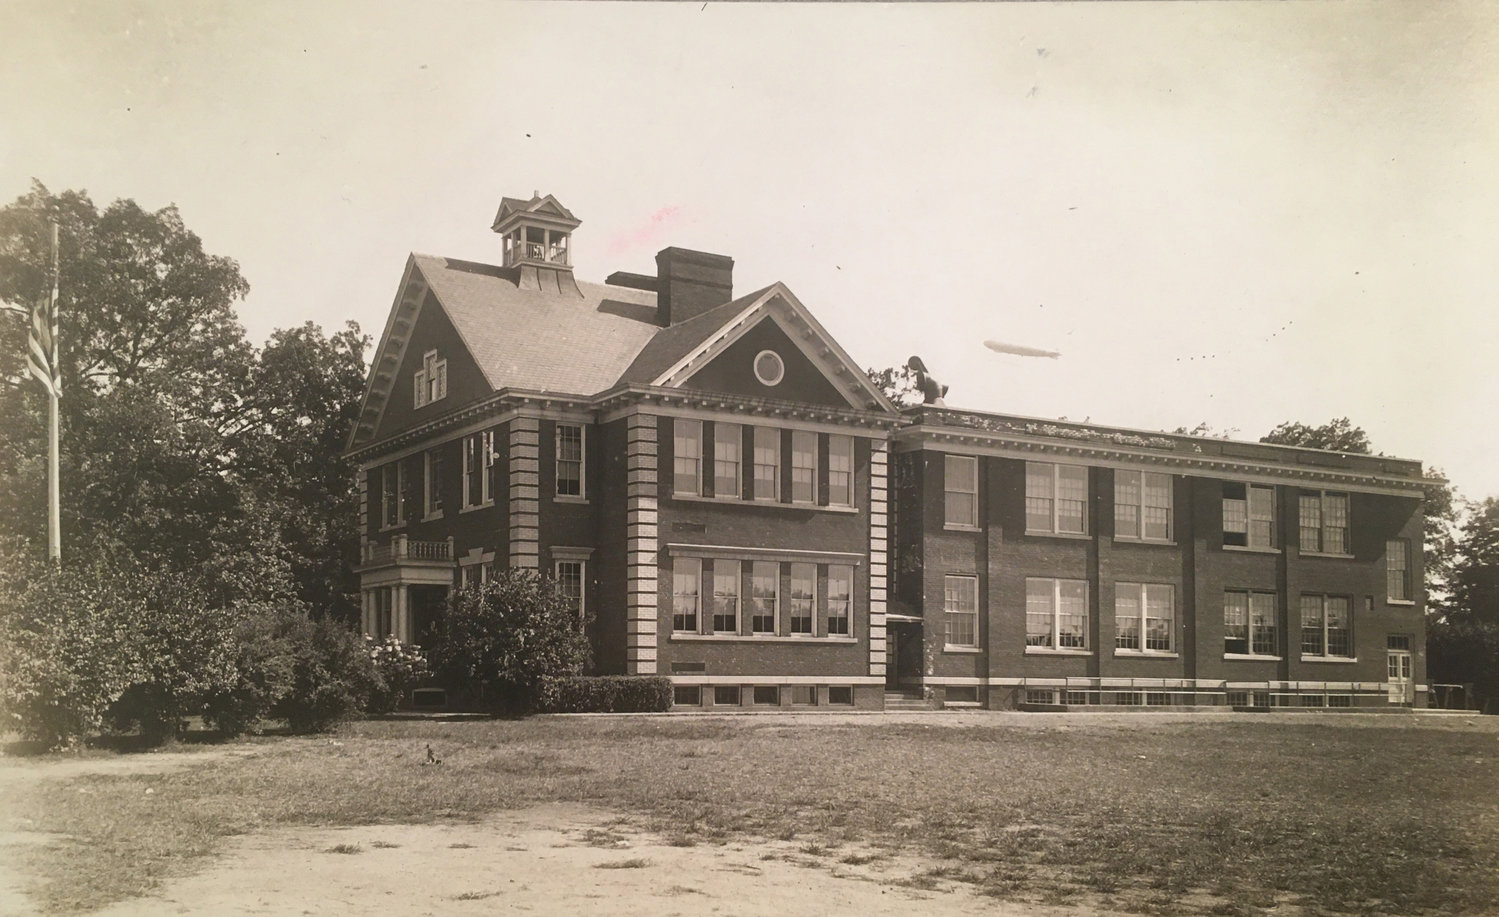 Chestnut Street School in West Hempstead celebrated its 108th anniversary on Wednesday.